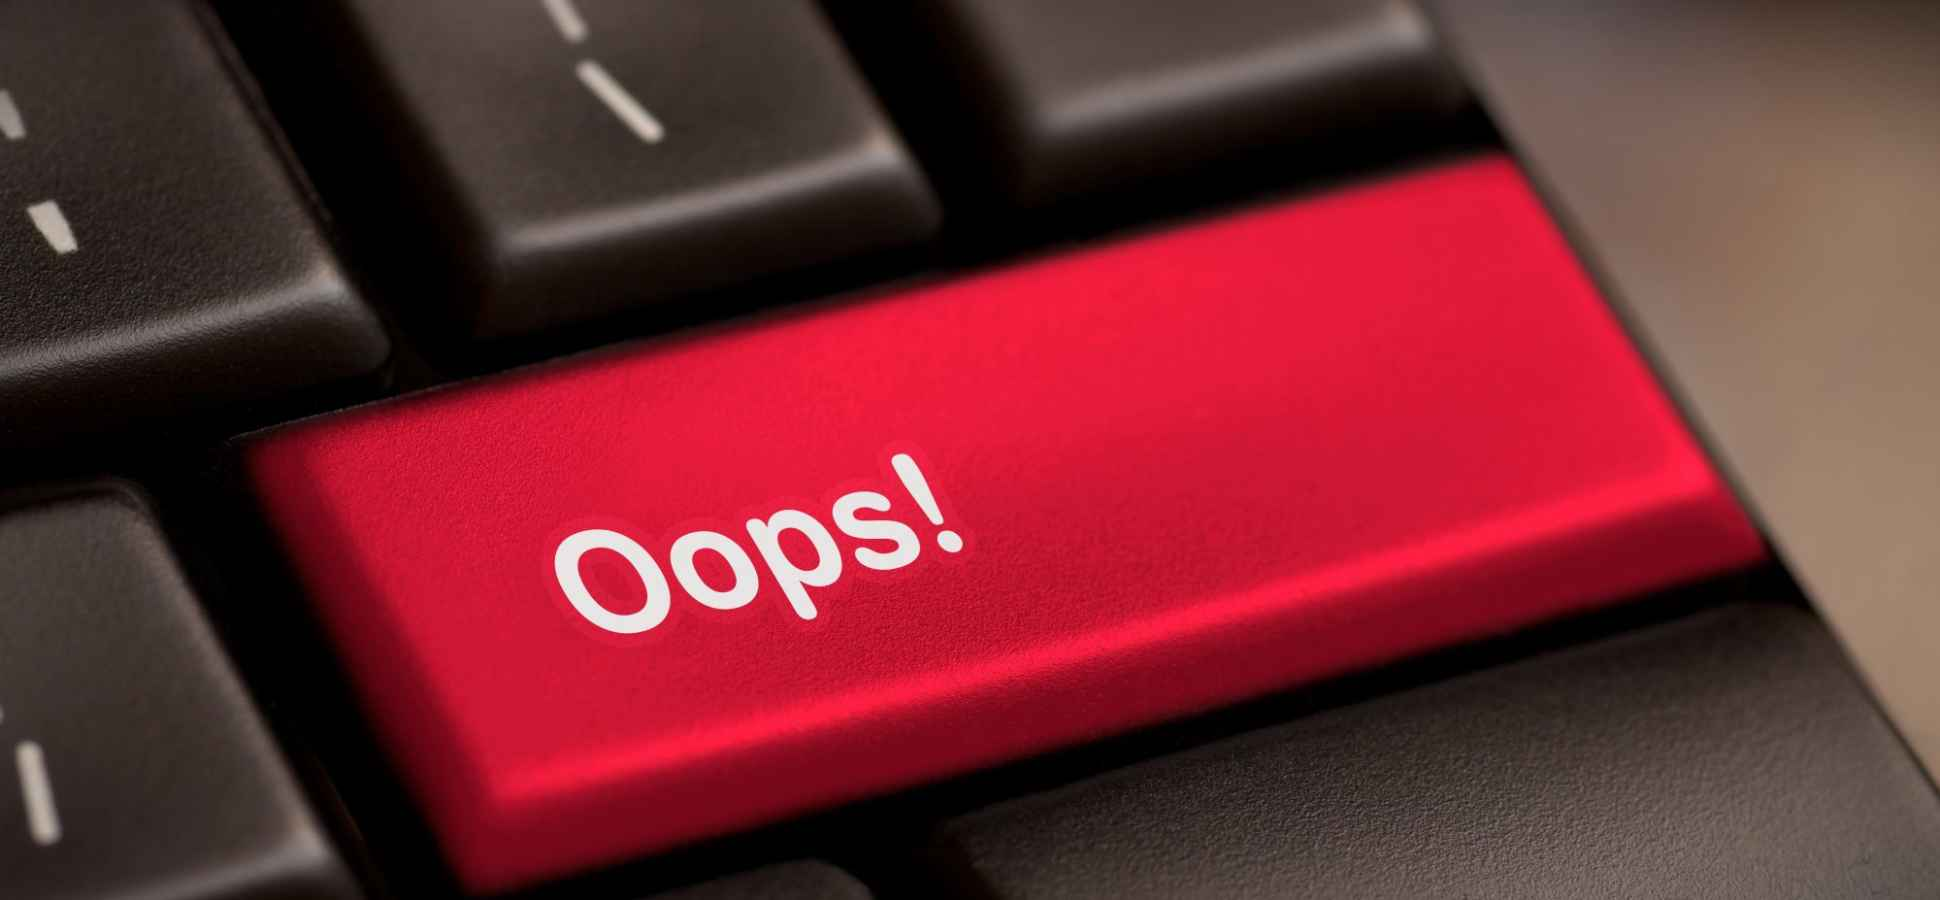 Where Did Your Pitch Go Wrong? Experienced Entrepreneurs Share Their Mistakes